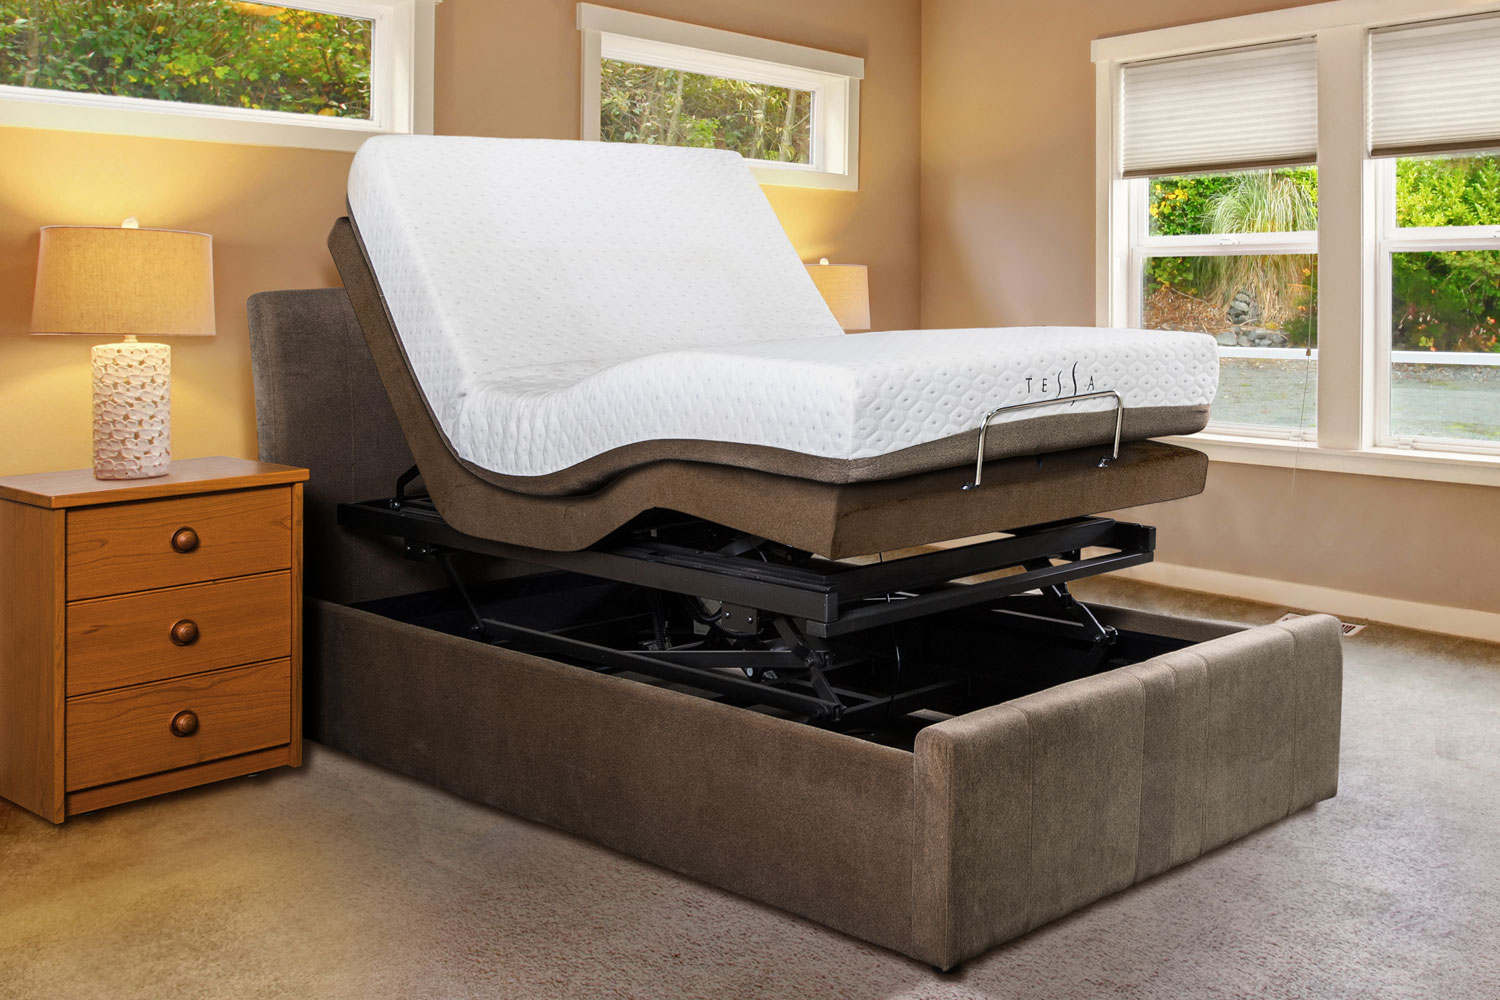 Electric Adjustable Beds Archives - Tessa Furniture